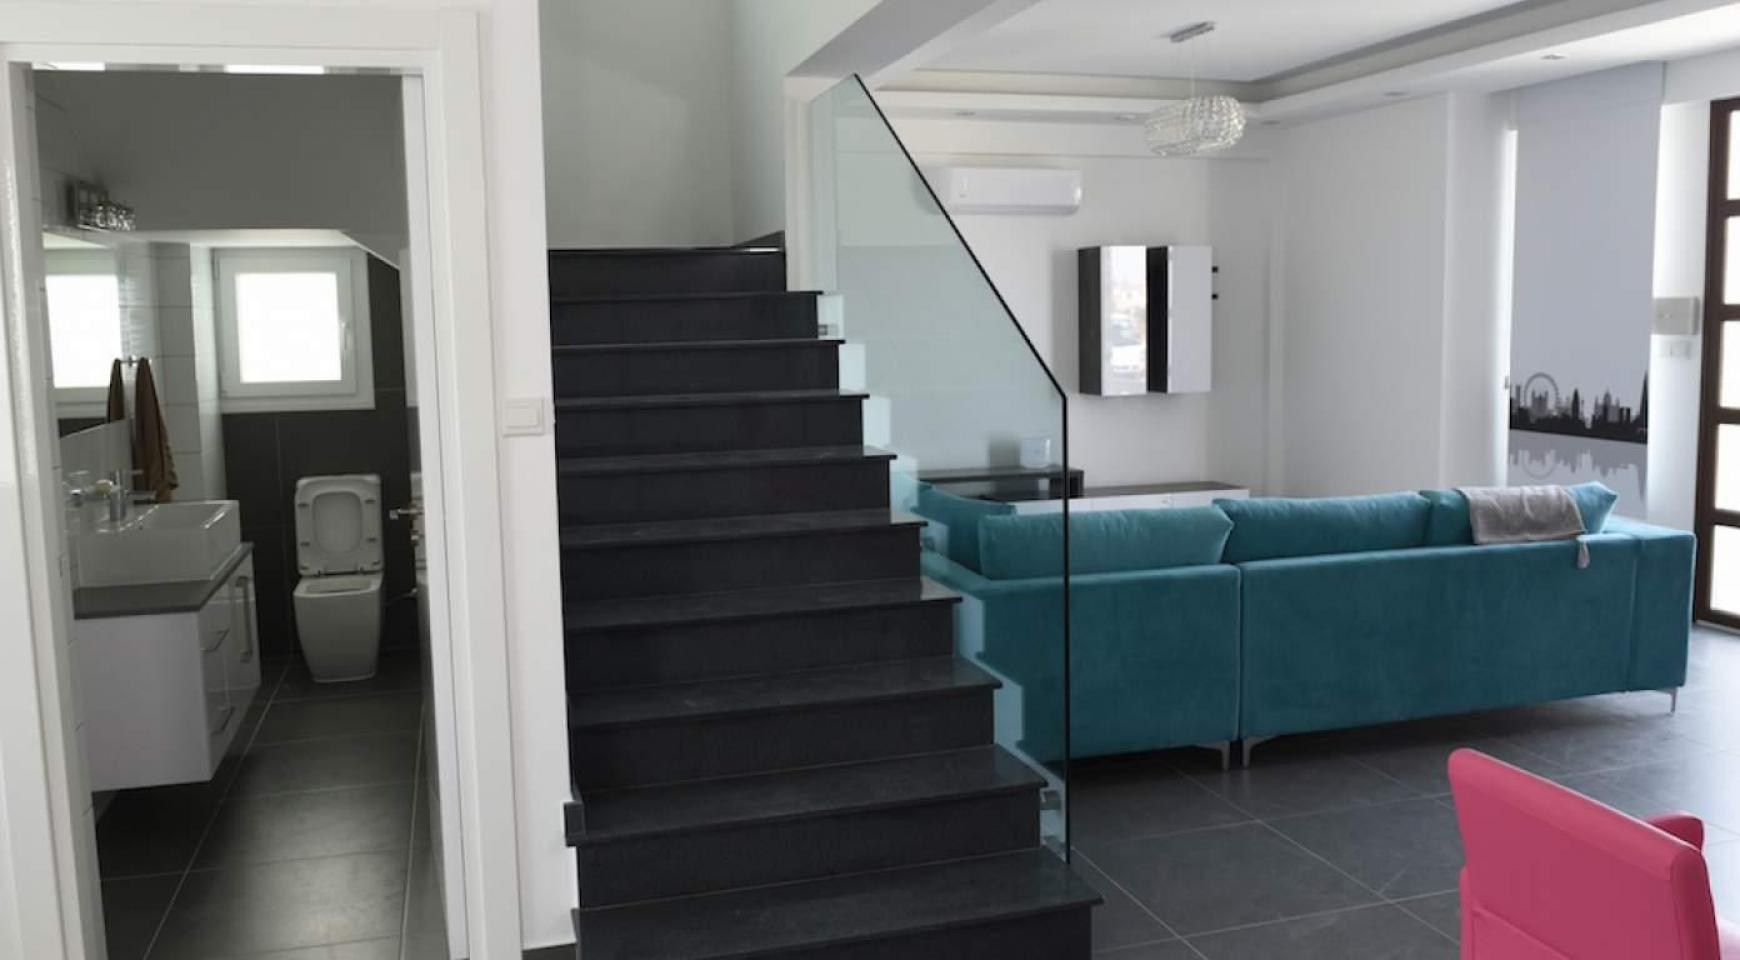 4 Bedroom House in Leivadia Area - 17